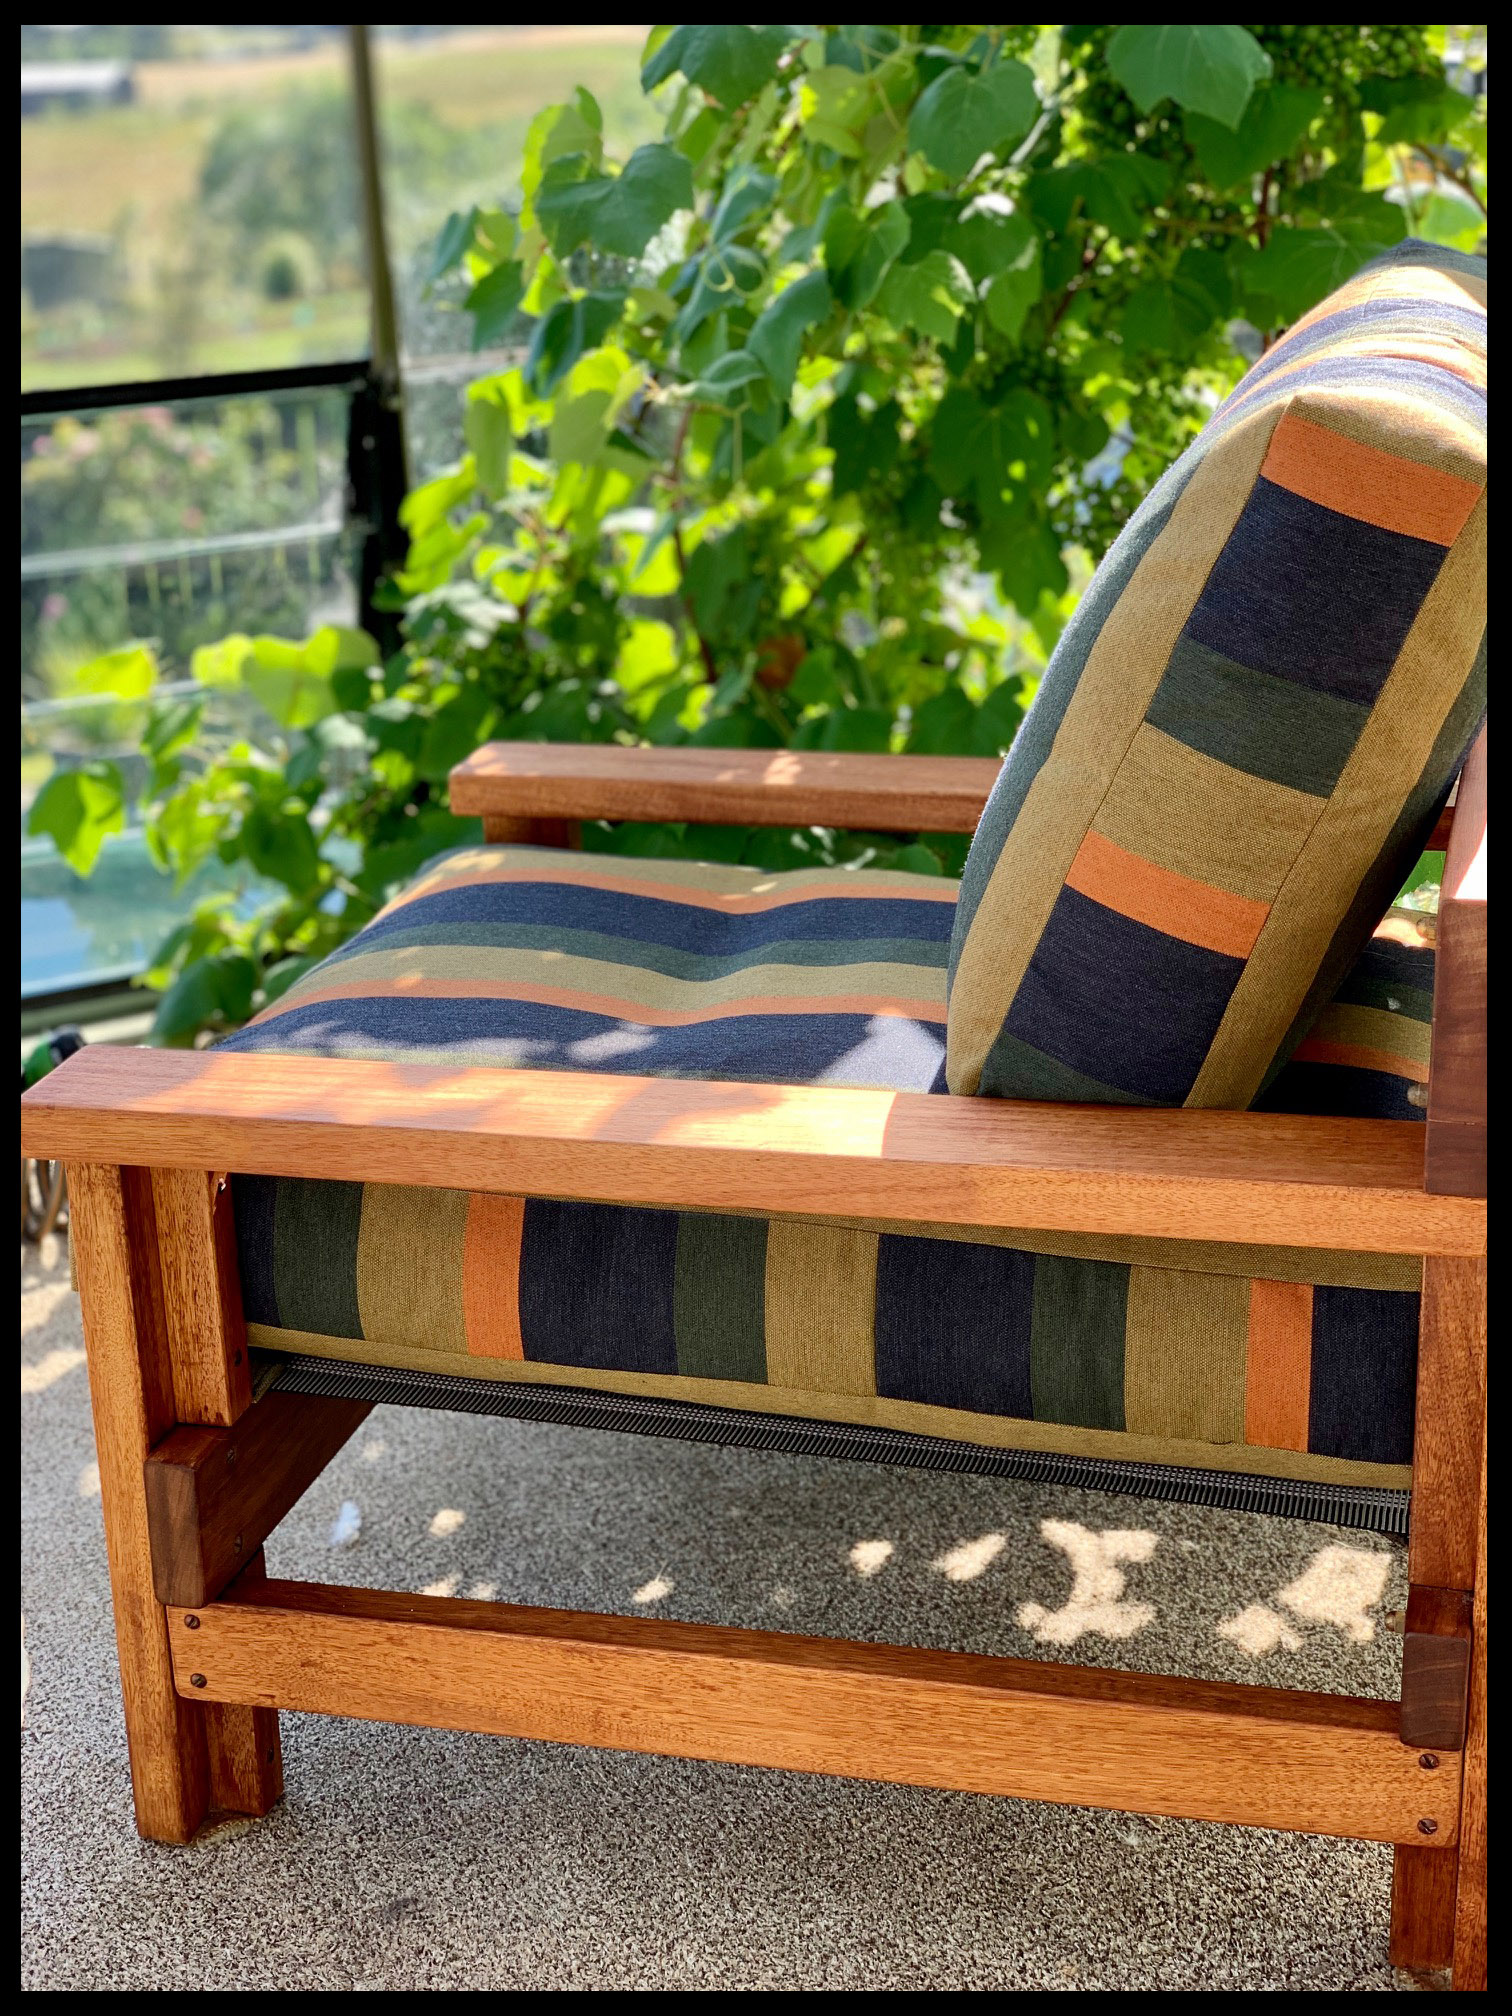 Re-vamped 1960's chairs with Sunbrella outdoor furniture fabric